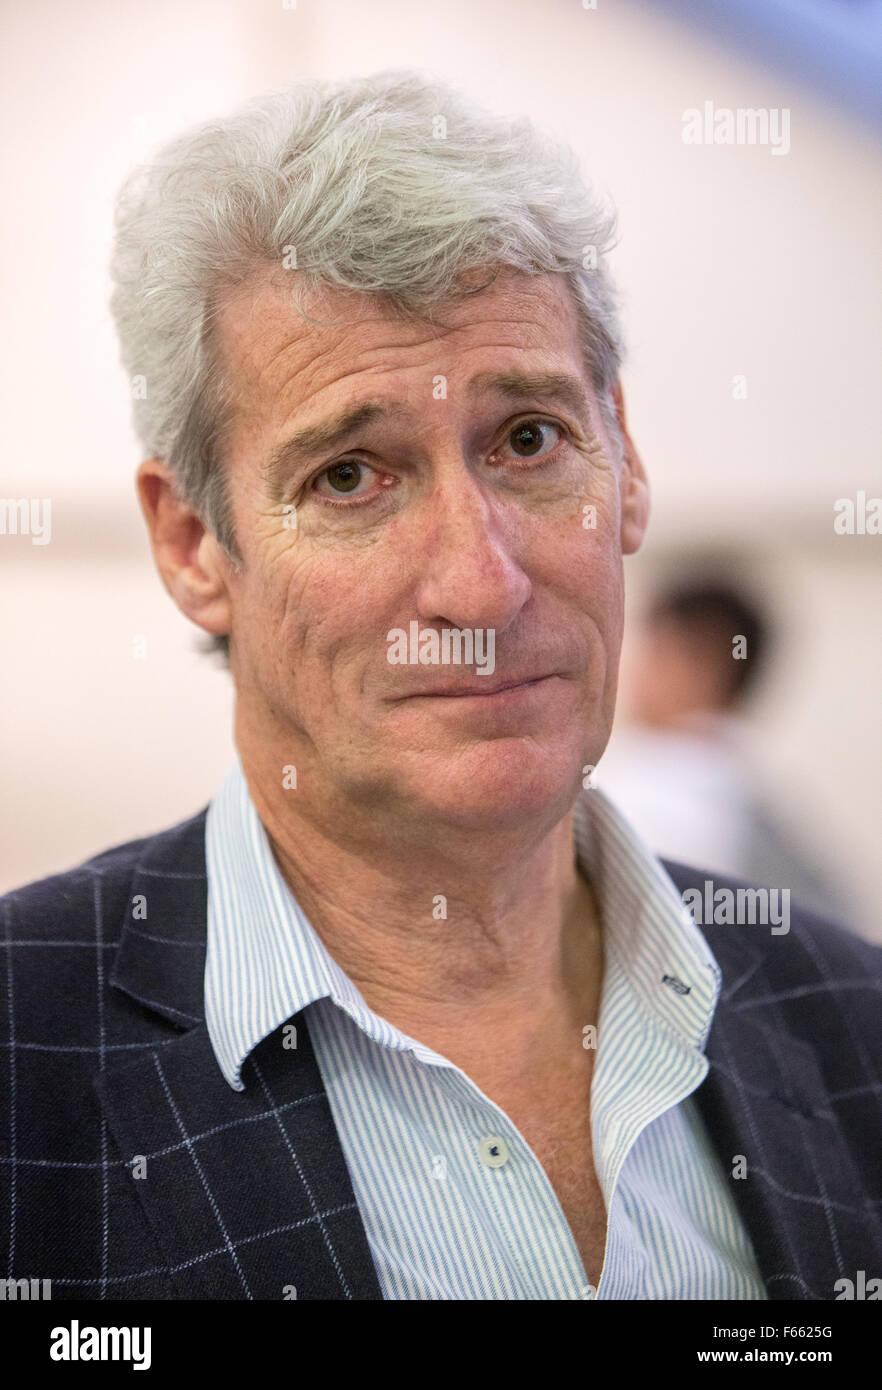 Journalist and broadcaster Jeremy Paxman in London - Stock Image